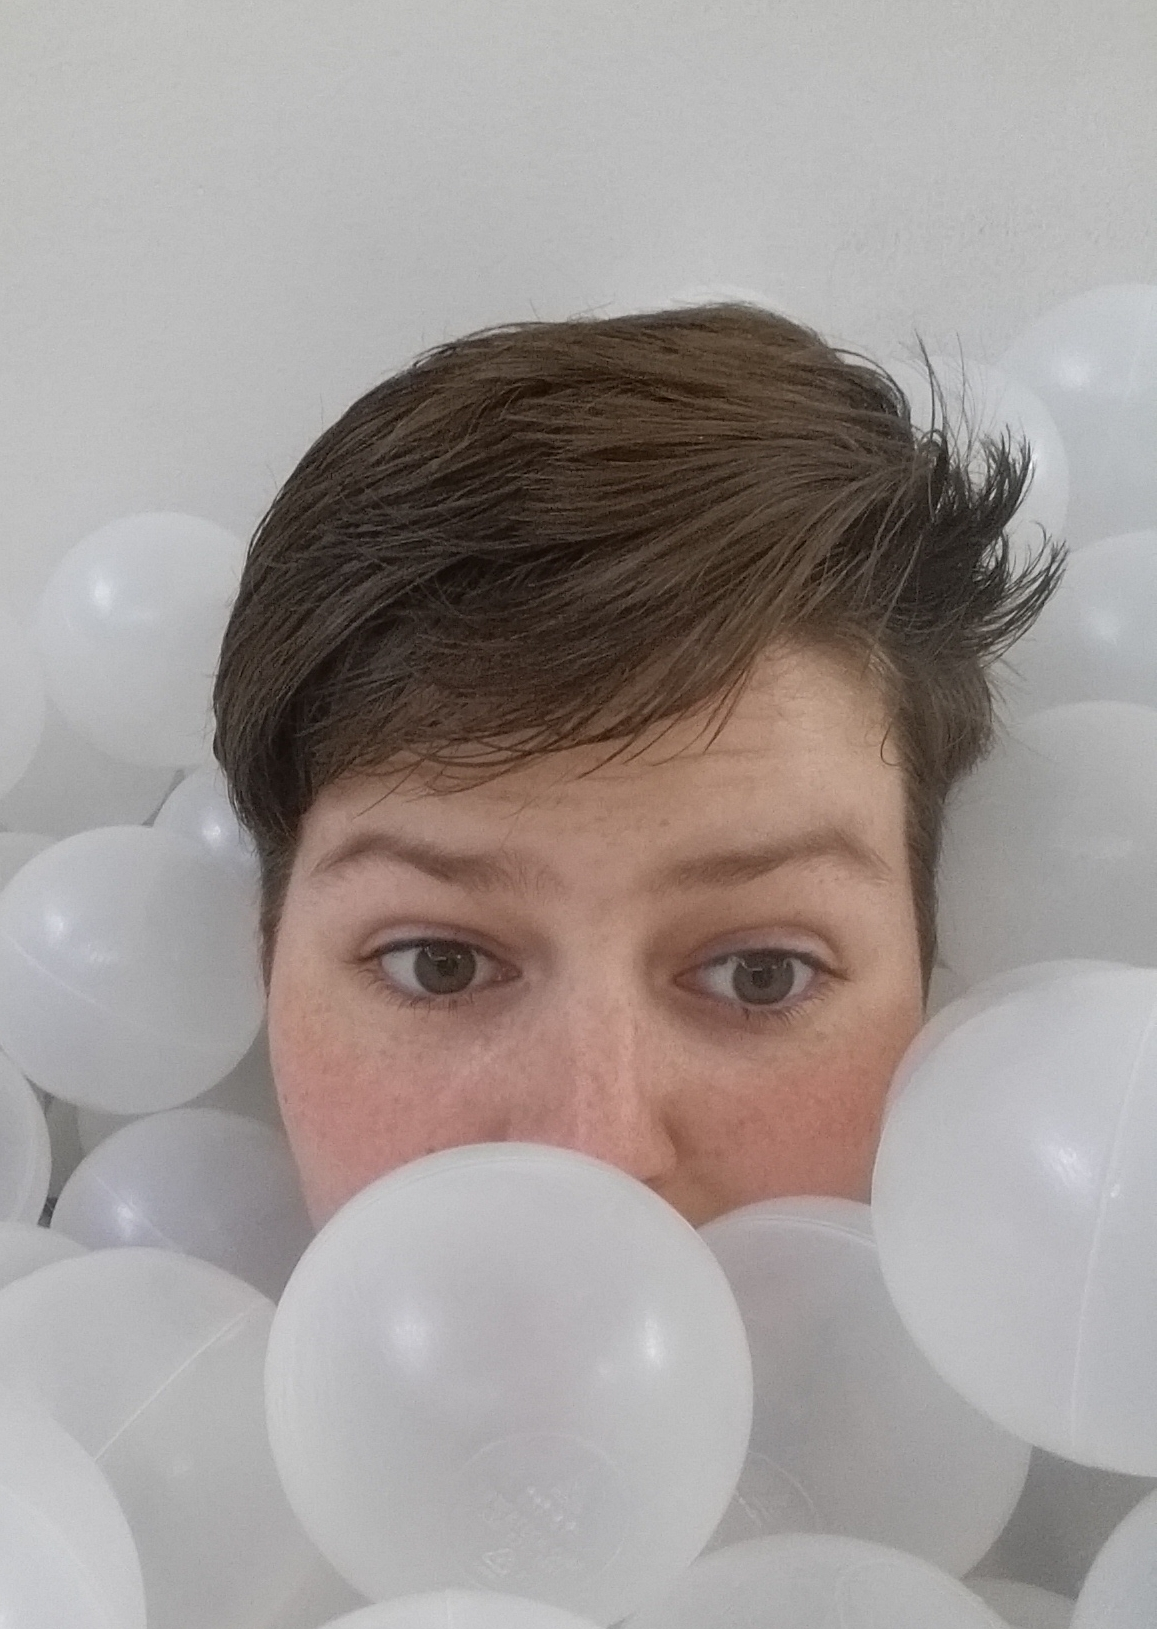 Indigo in a ball pit, covered with white plastic balls. You can see their eyes, perfect freckles and short hair. It is swept to one side and spiked on the other.